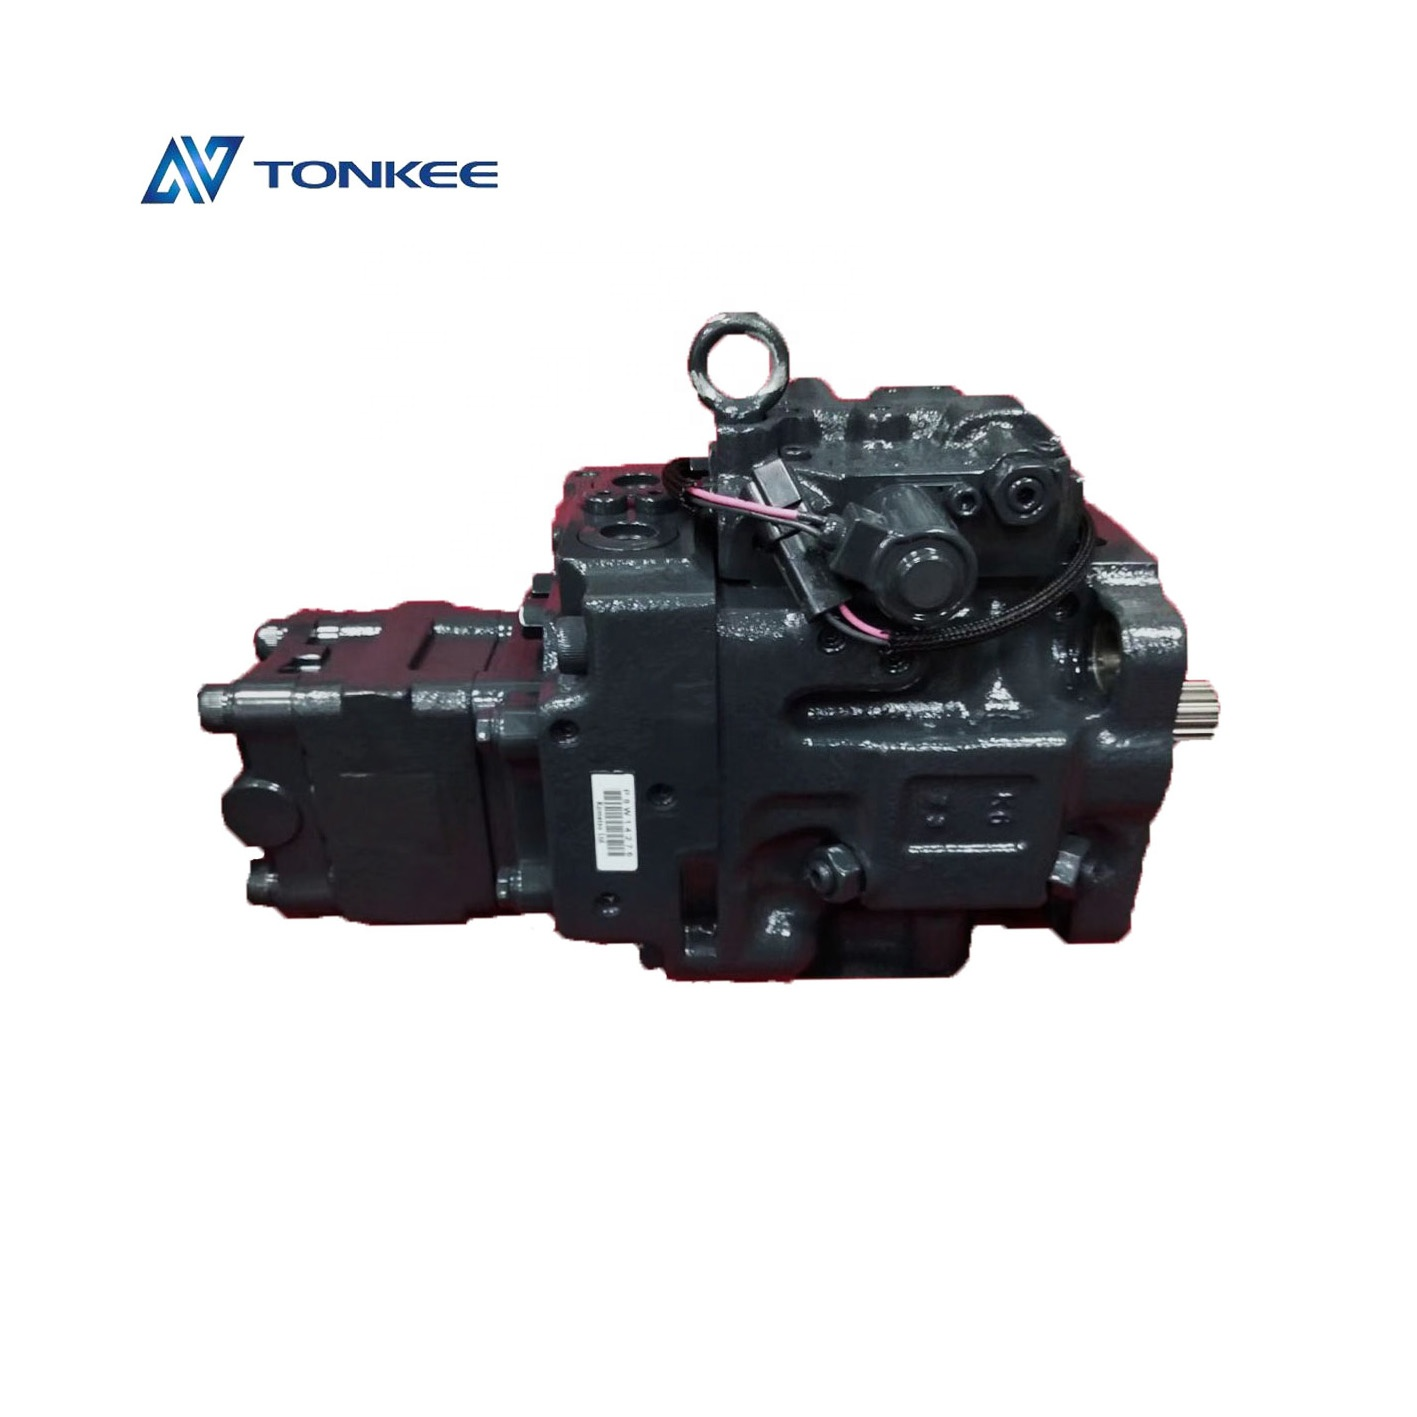 Hydraulic pump PC40MR-2 PC50MR-2 PC50-7 hydraulic piston pump PC56MR excavator main pump 708-3S-00522 708-3S-00961 708-3S-00882